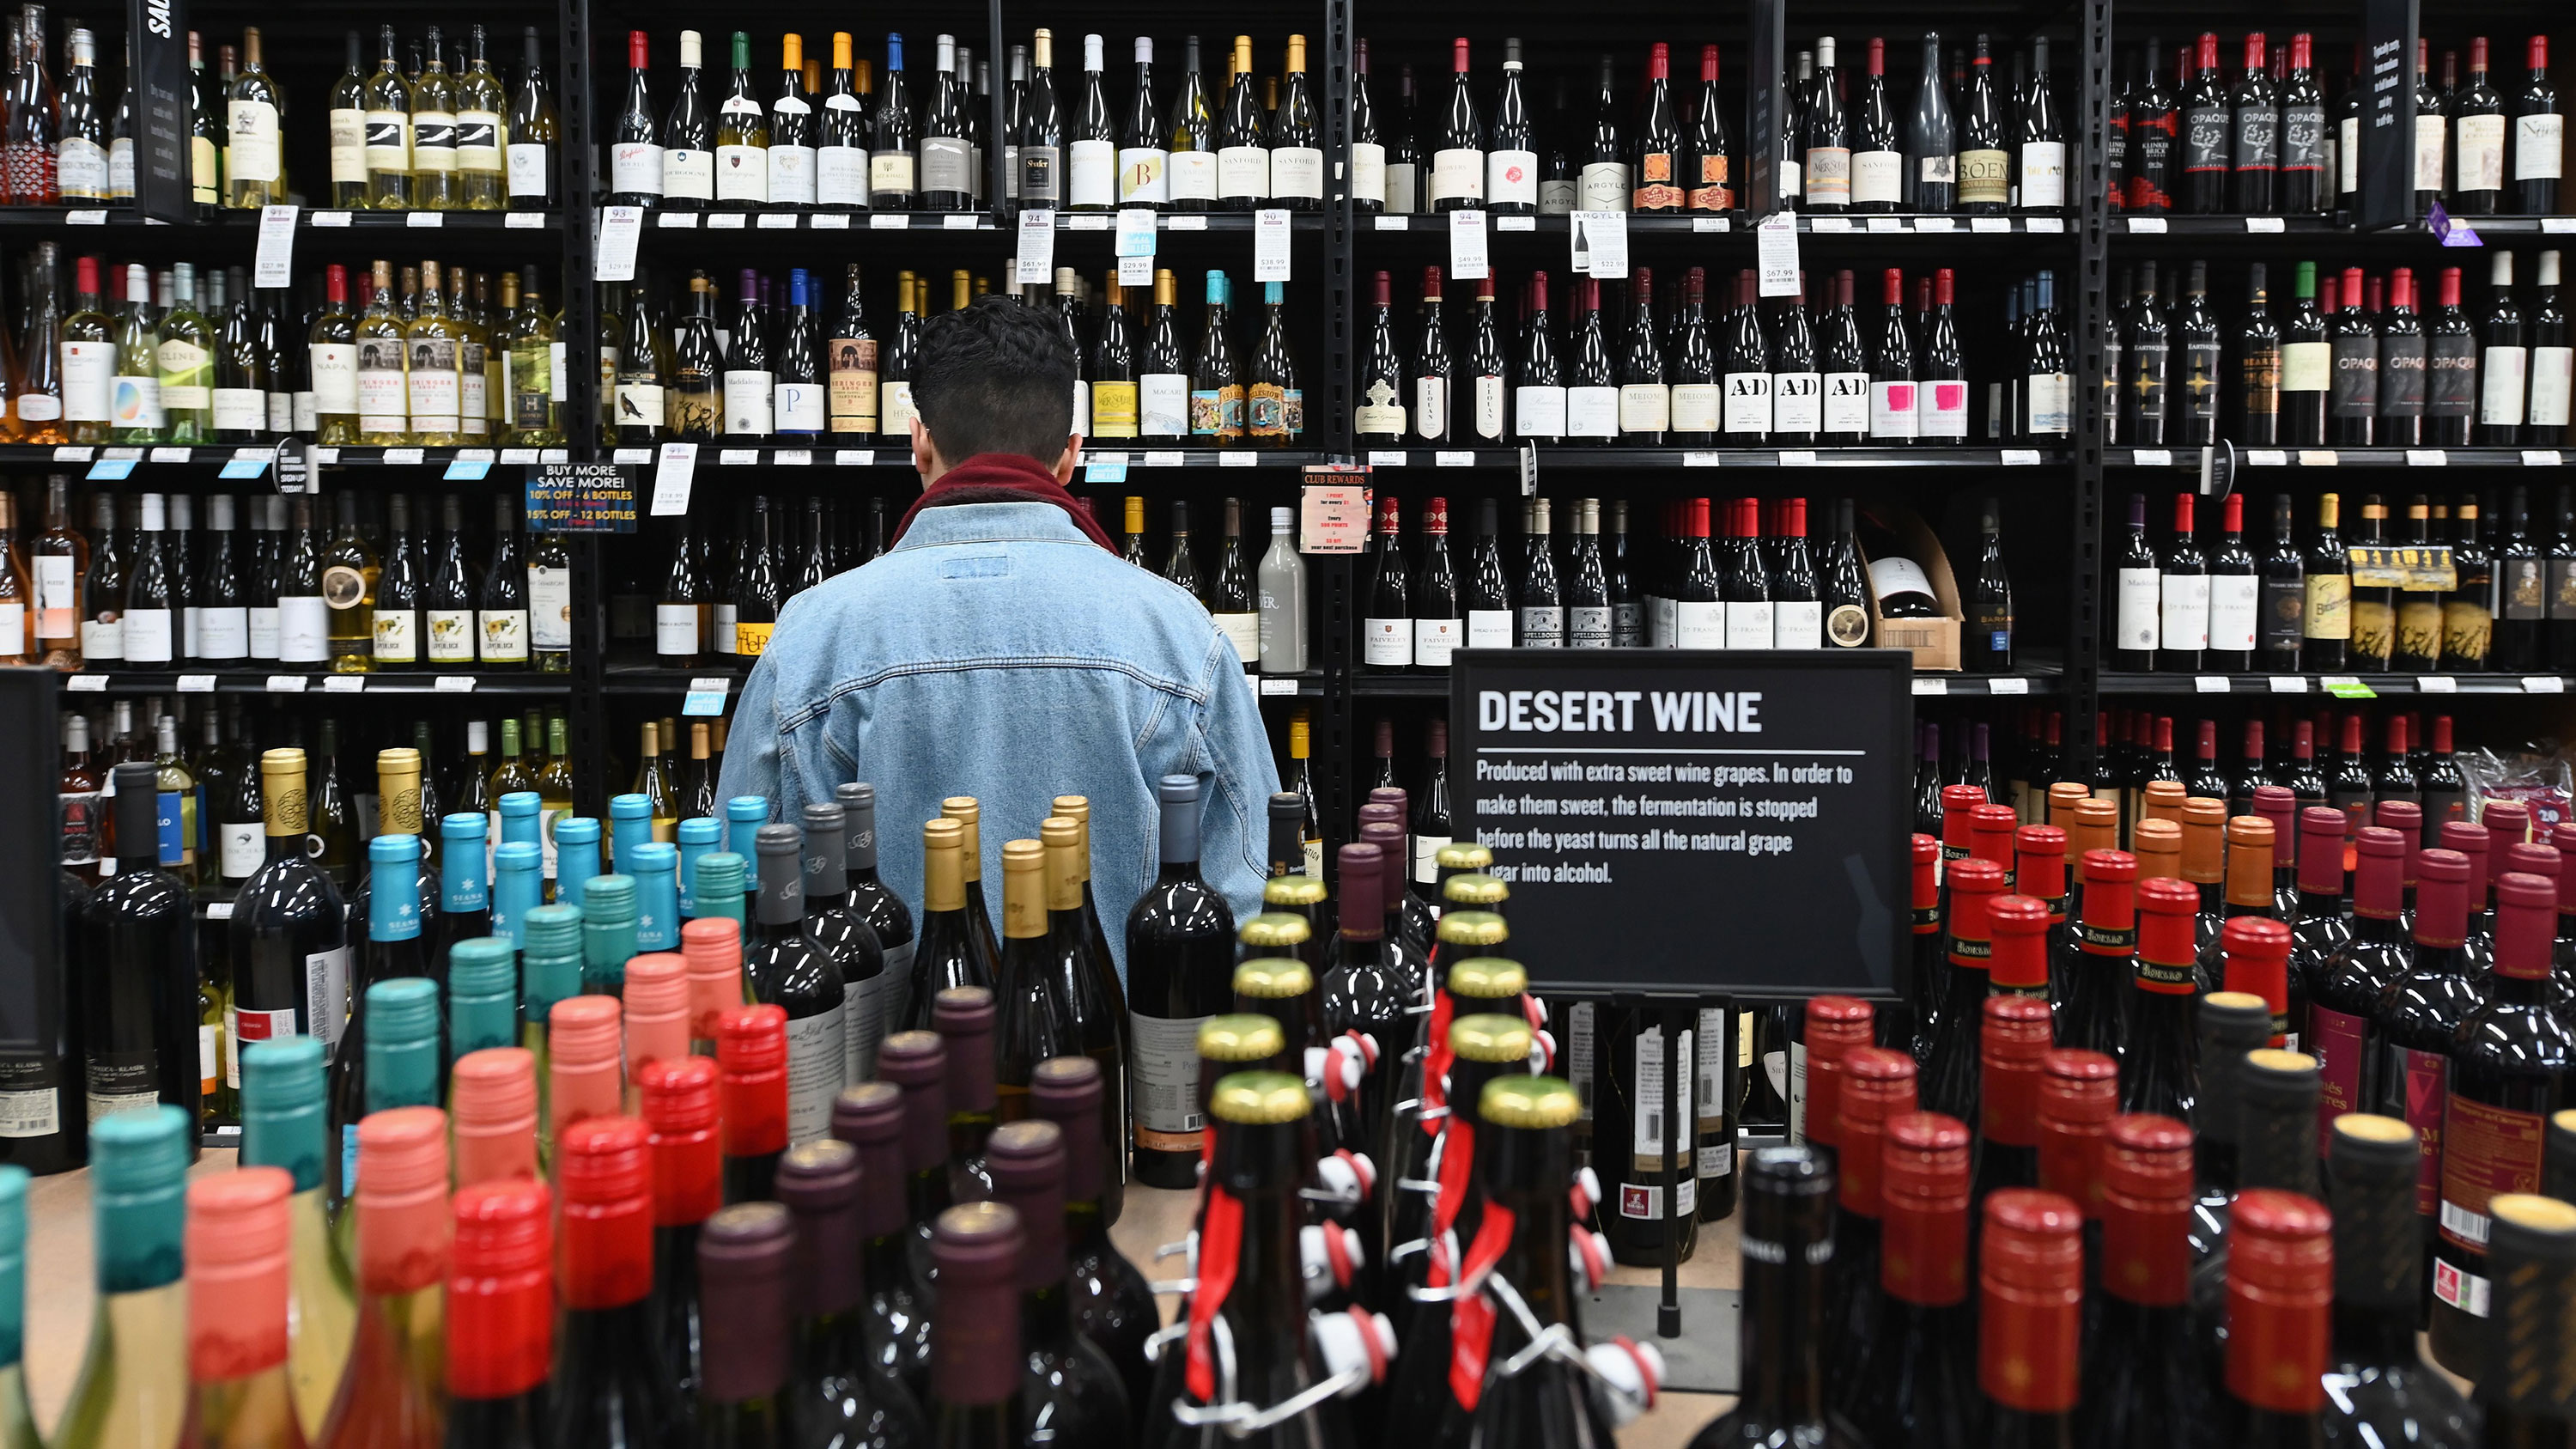 Booze sales are booming as people stockpile alcohol … but it may not last